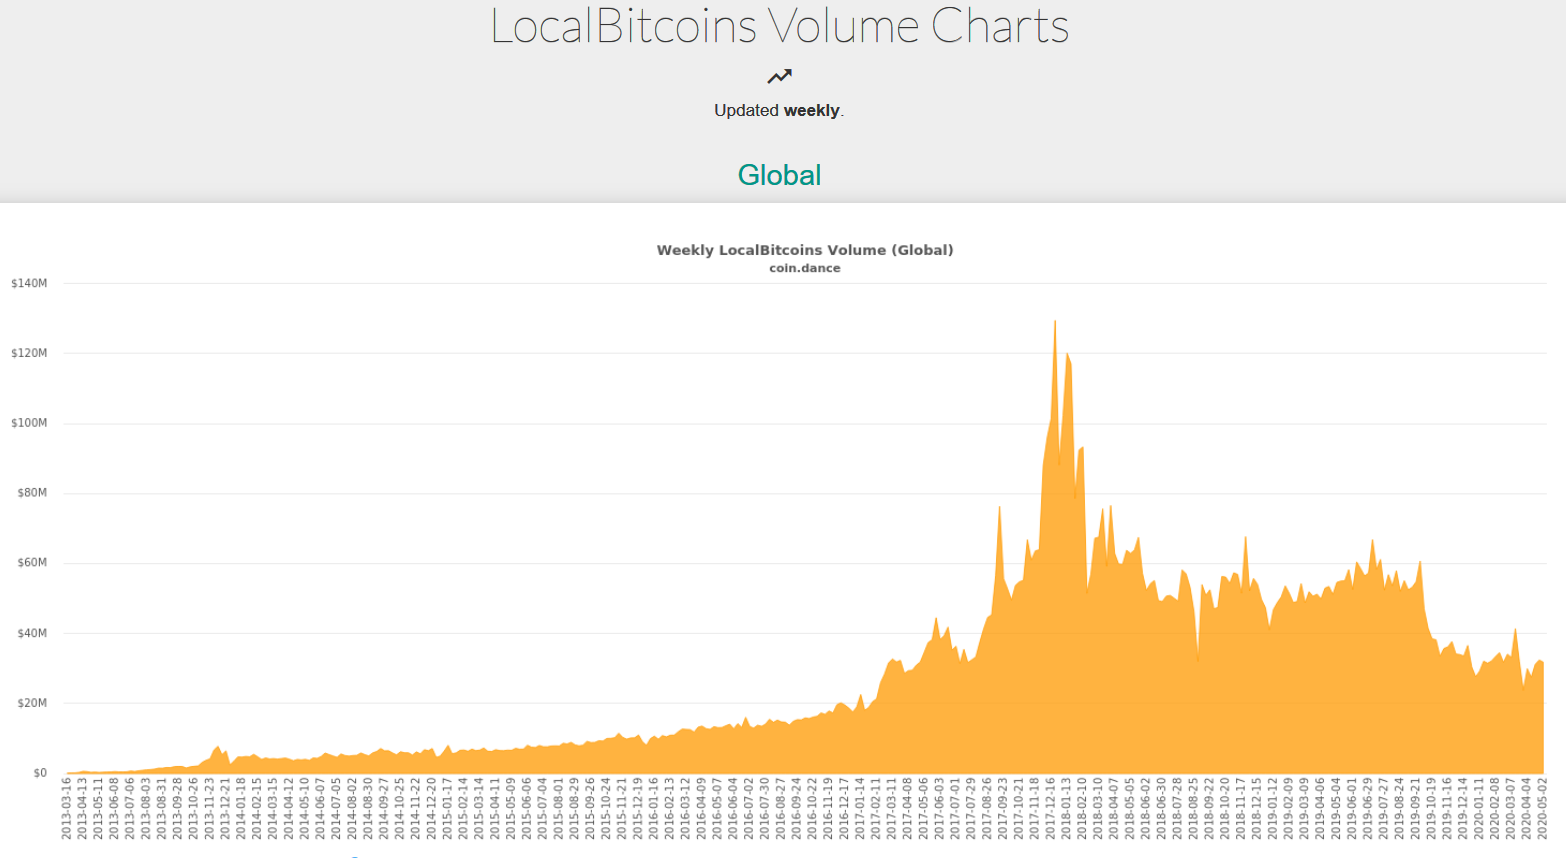 Trade volume including Bitcoin for LocalBitcoins